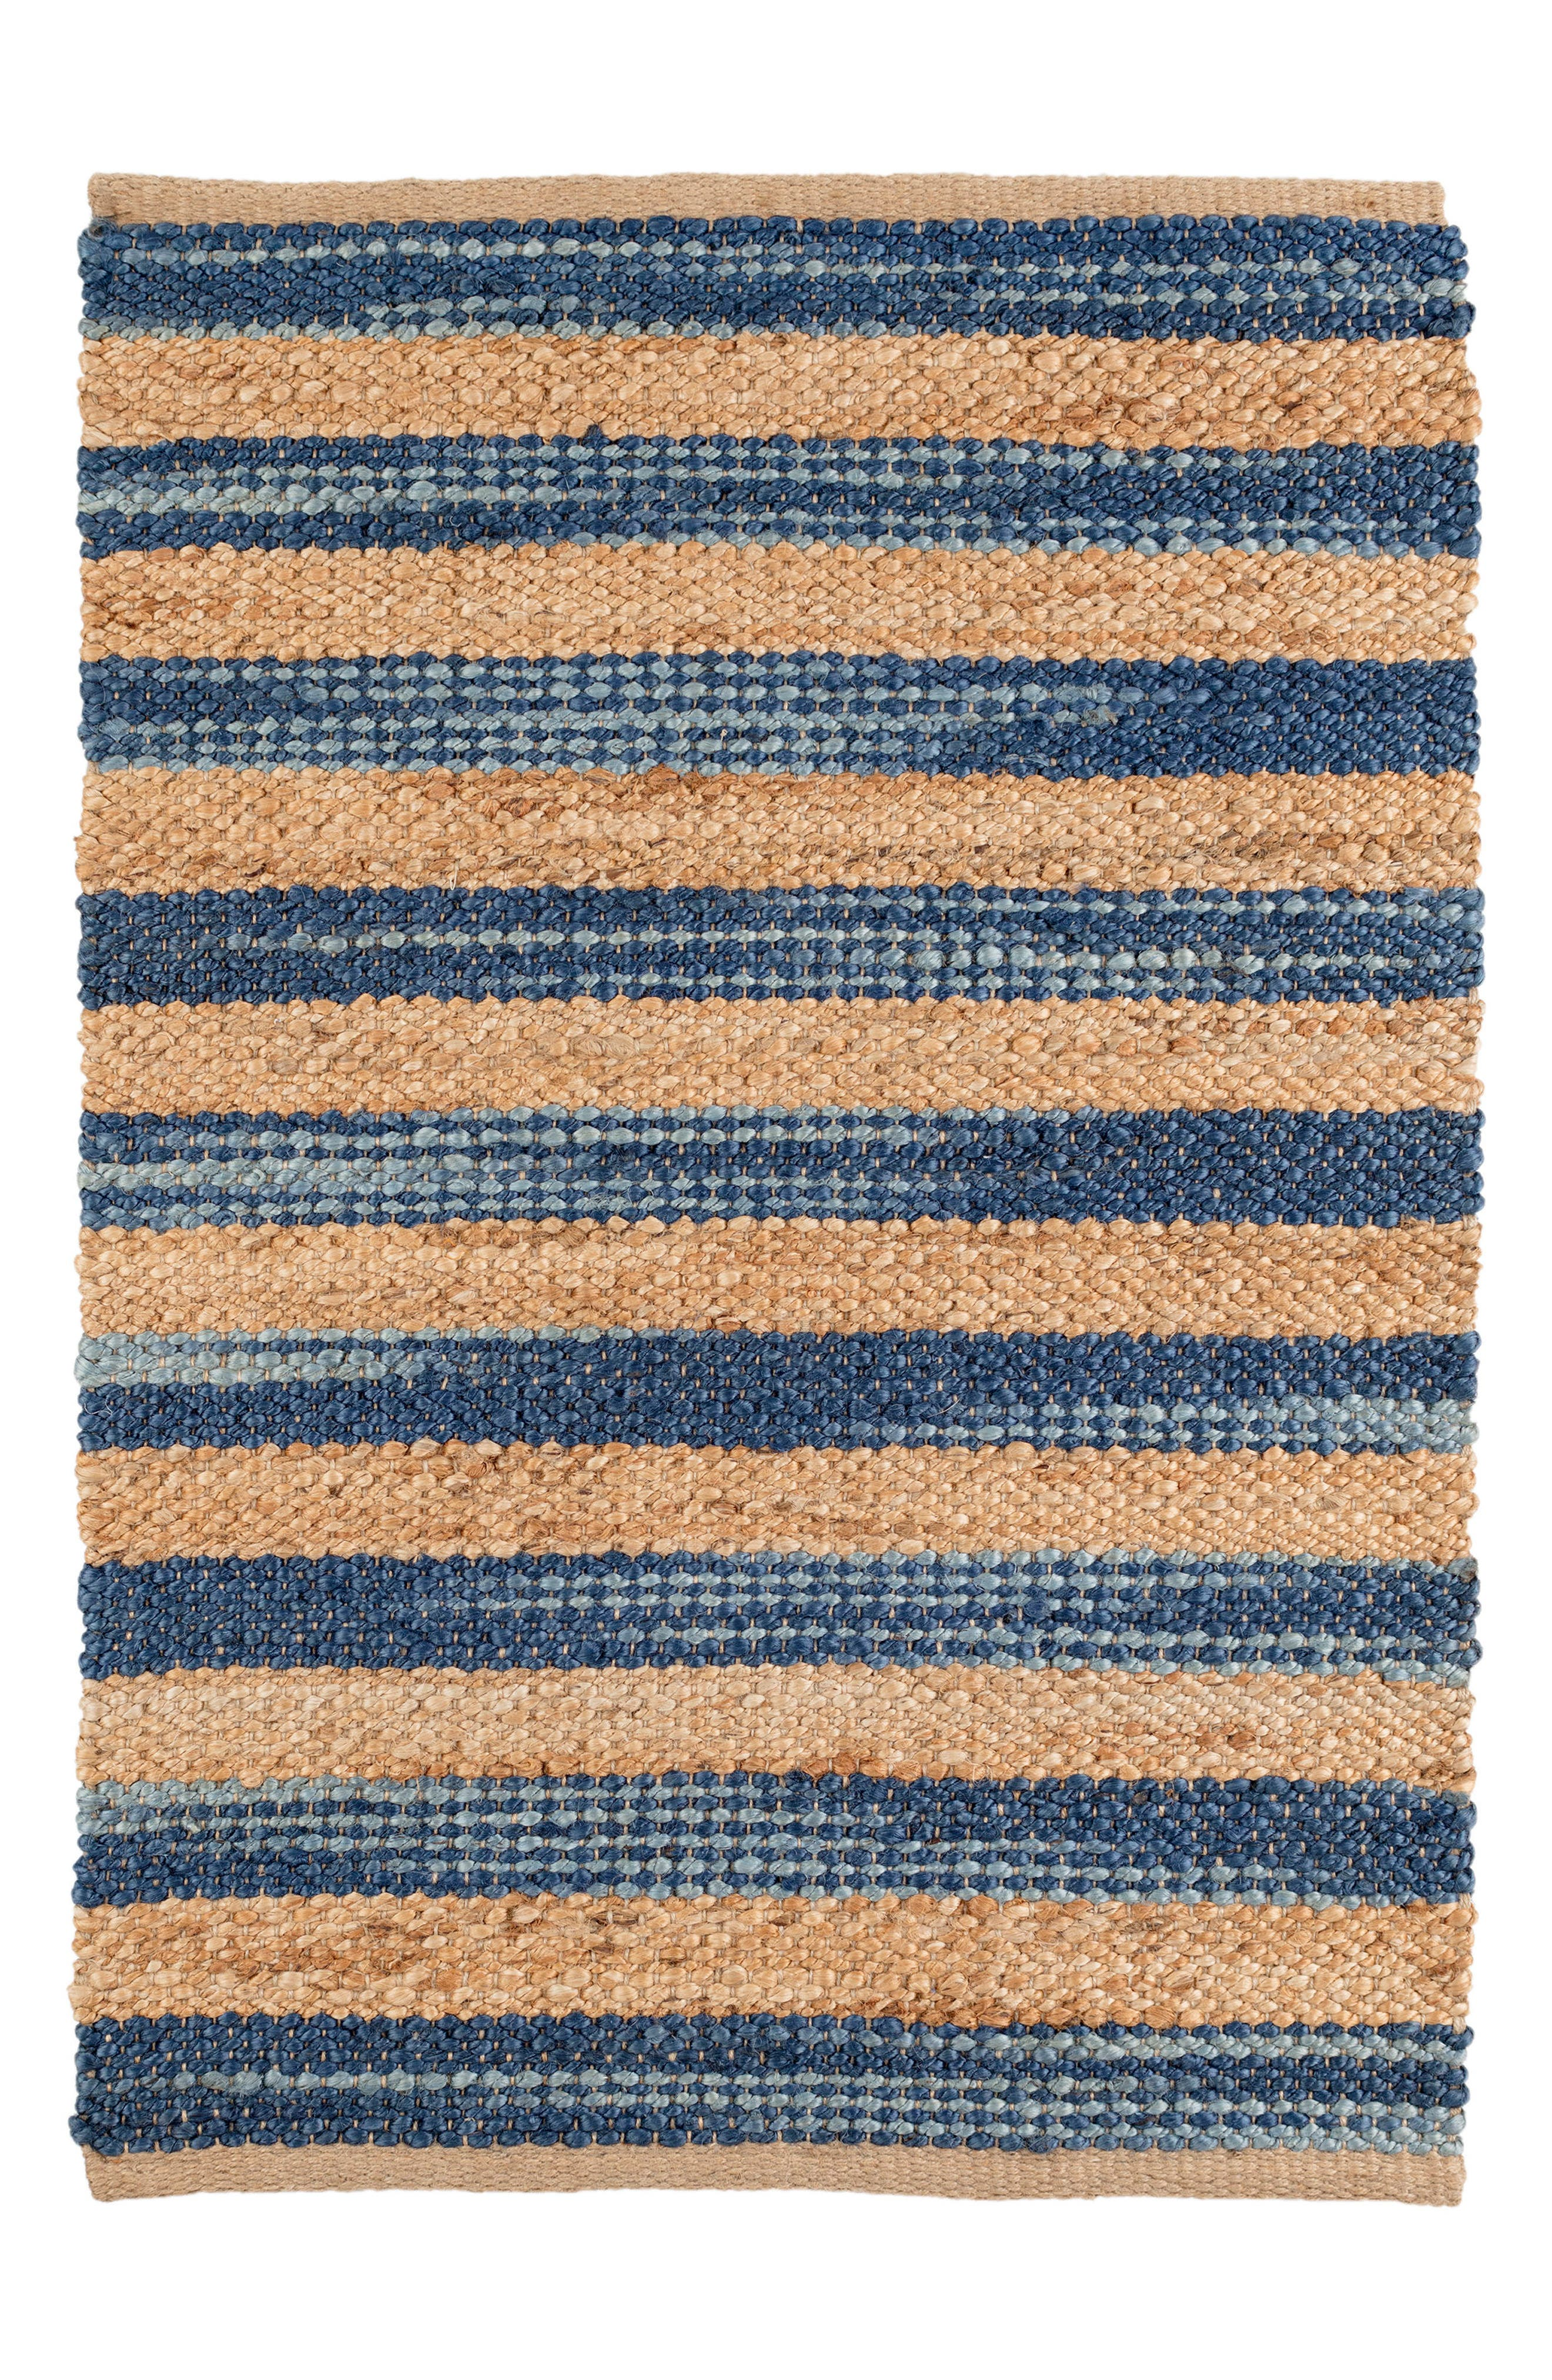 Corfu Woven Wool Rug,                             Main thumbnail 1, color,                             BLUE